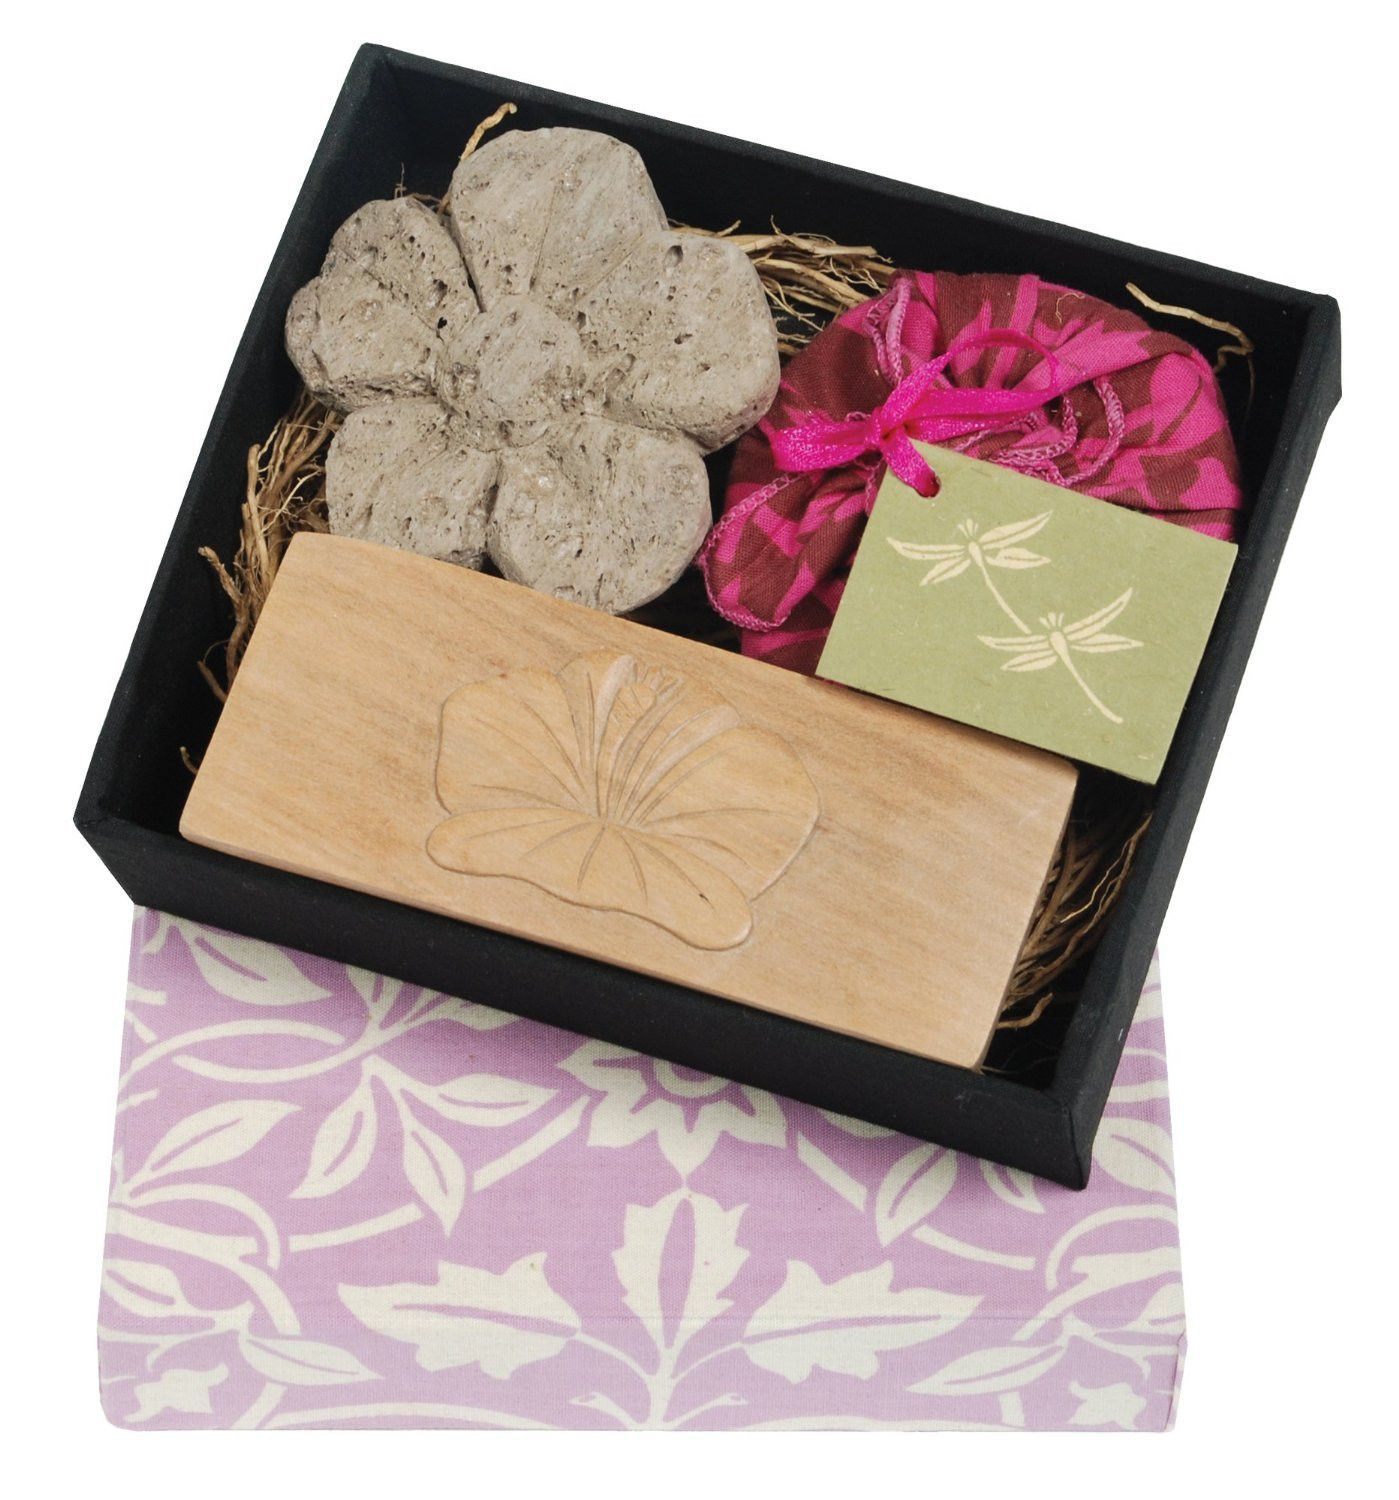 Flower pumice brush and soap boxed set pumice soap boxes and box